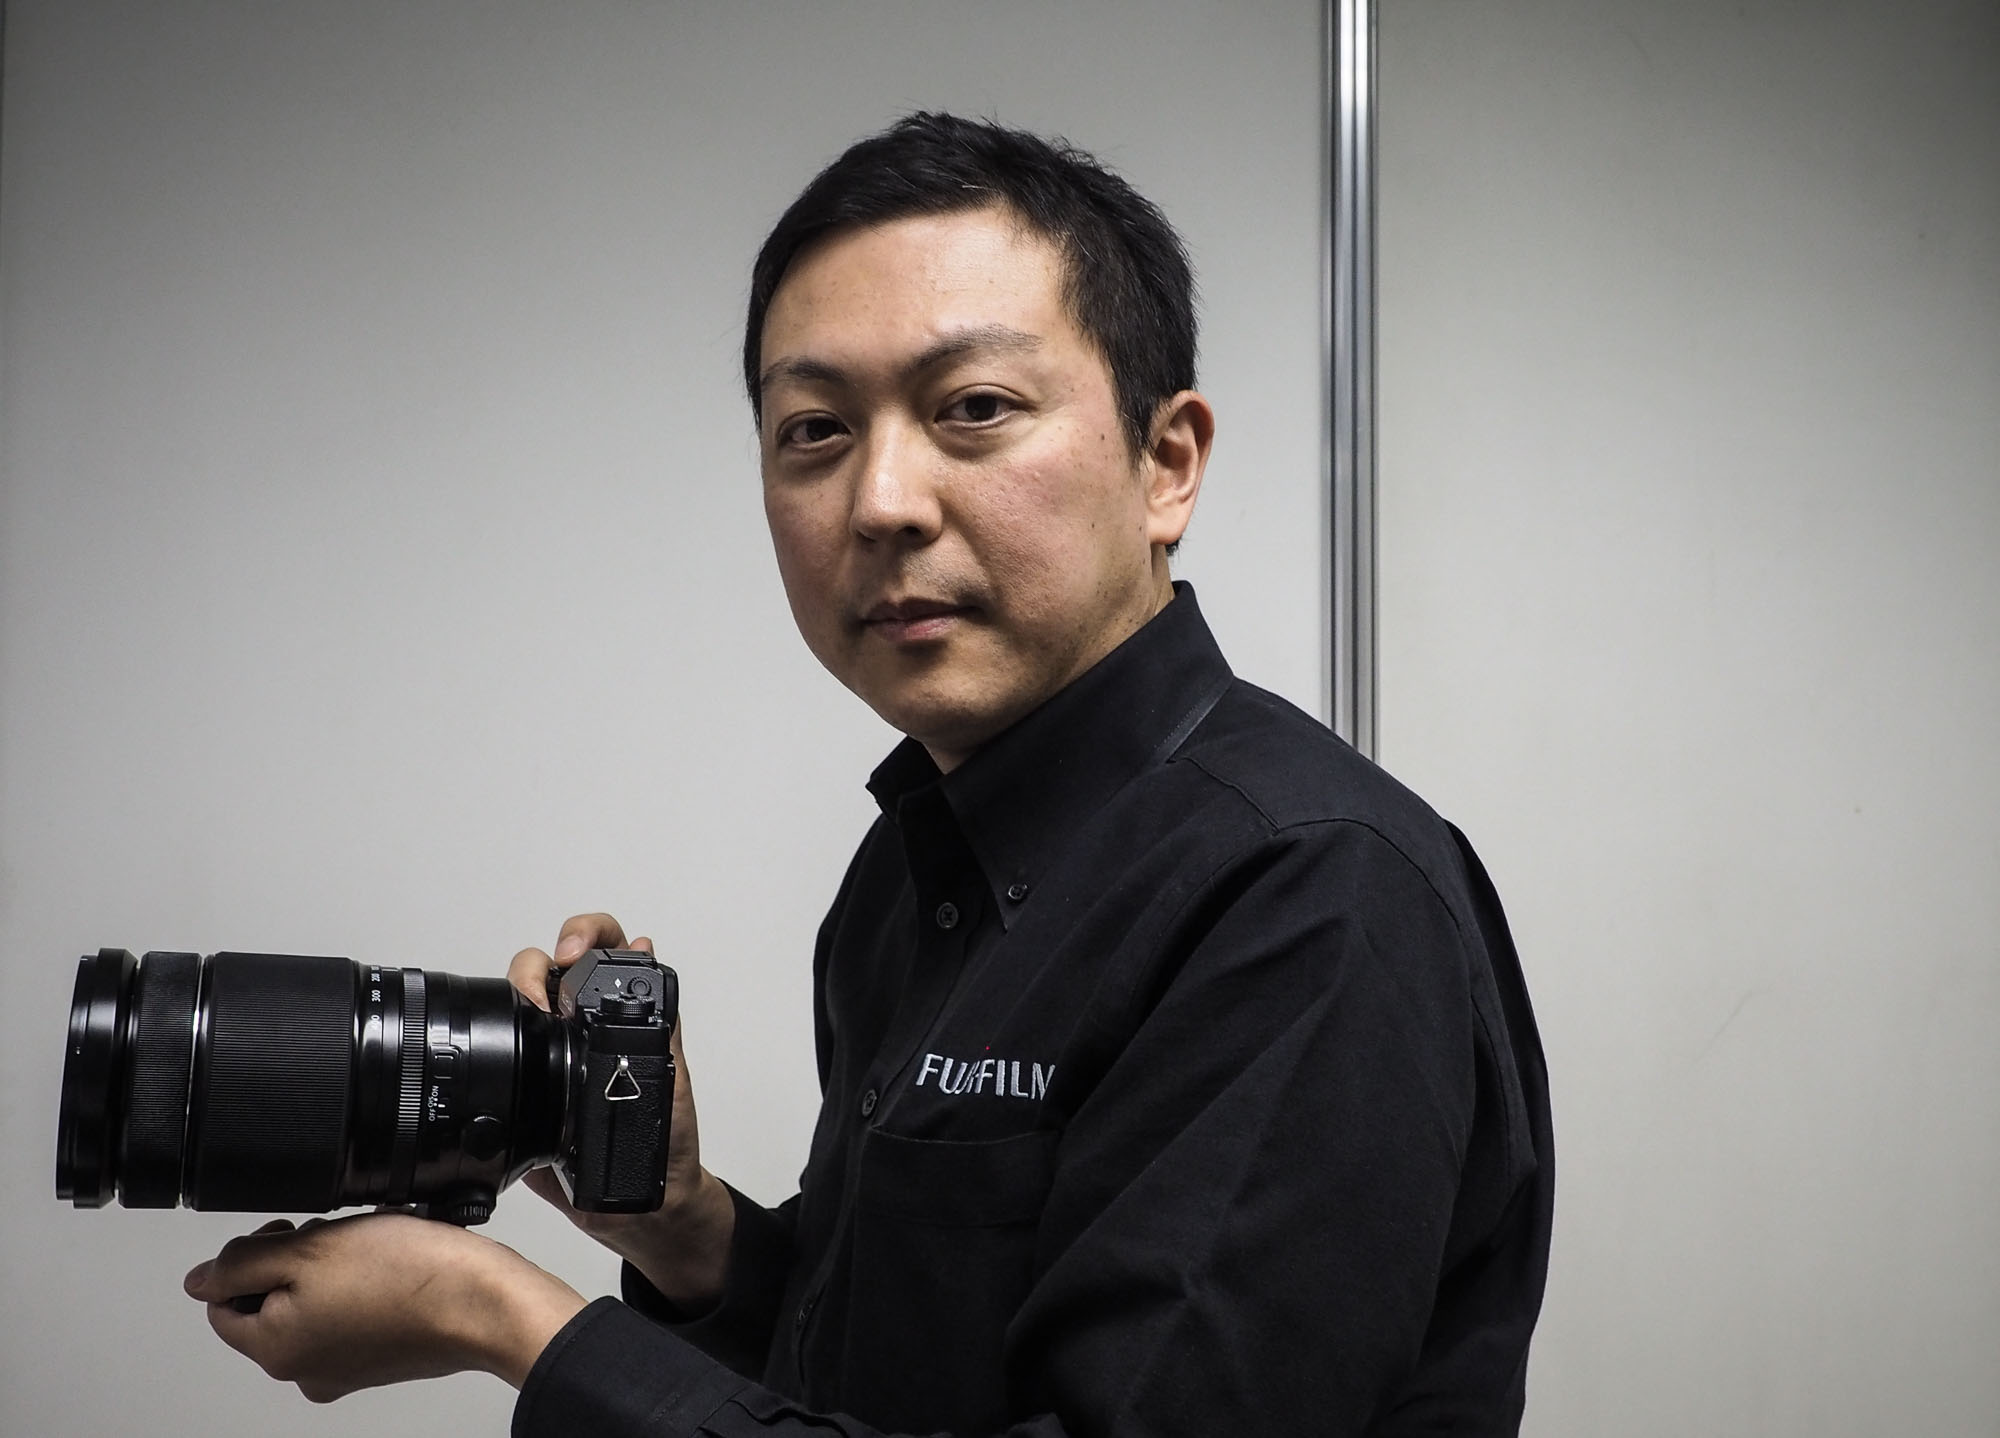 CP+ 2015: Fujifilm interview - 'our lenses are waiting for higher